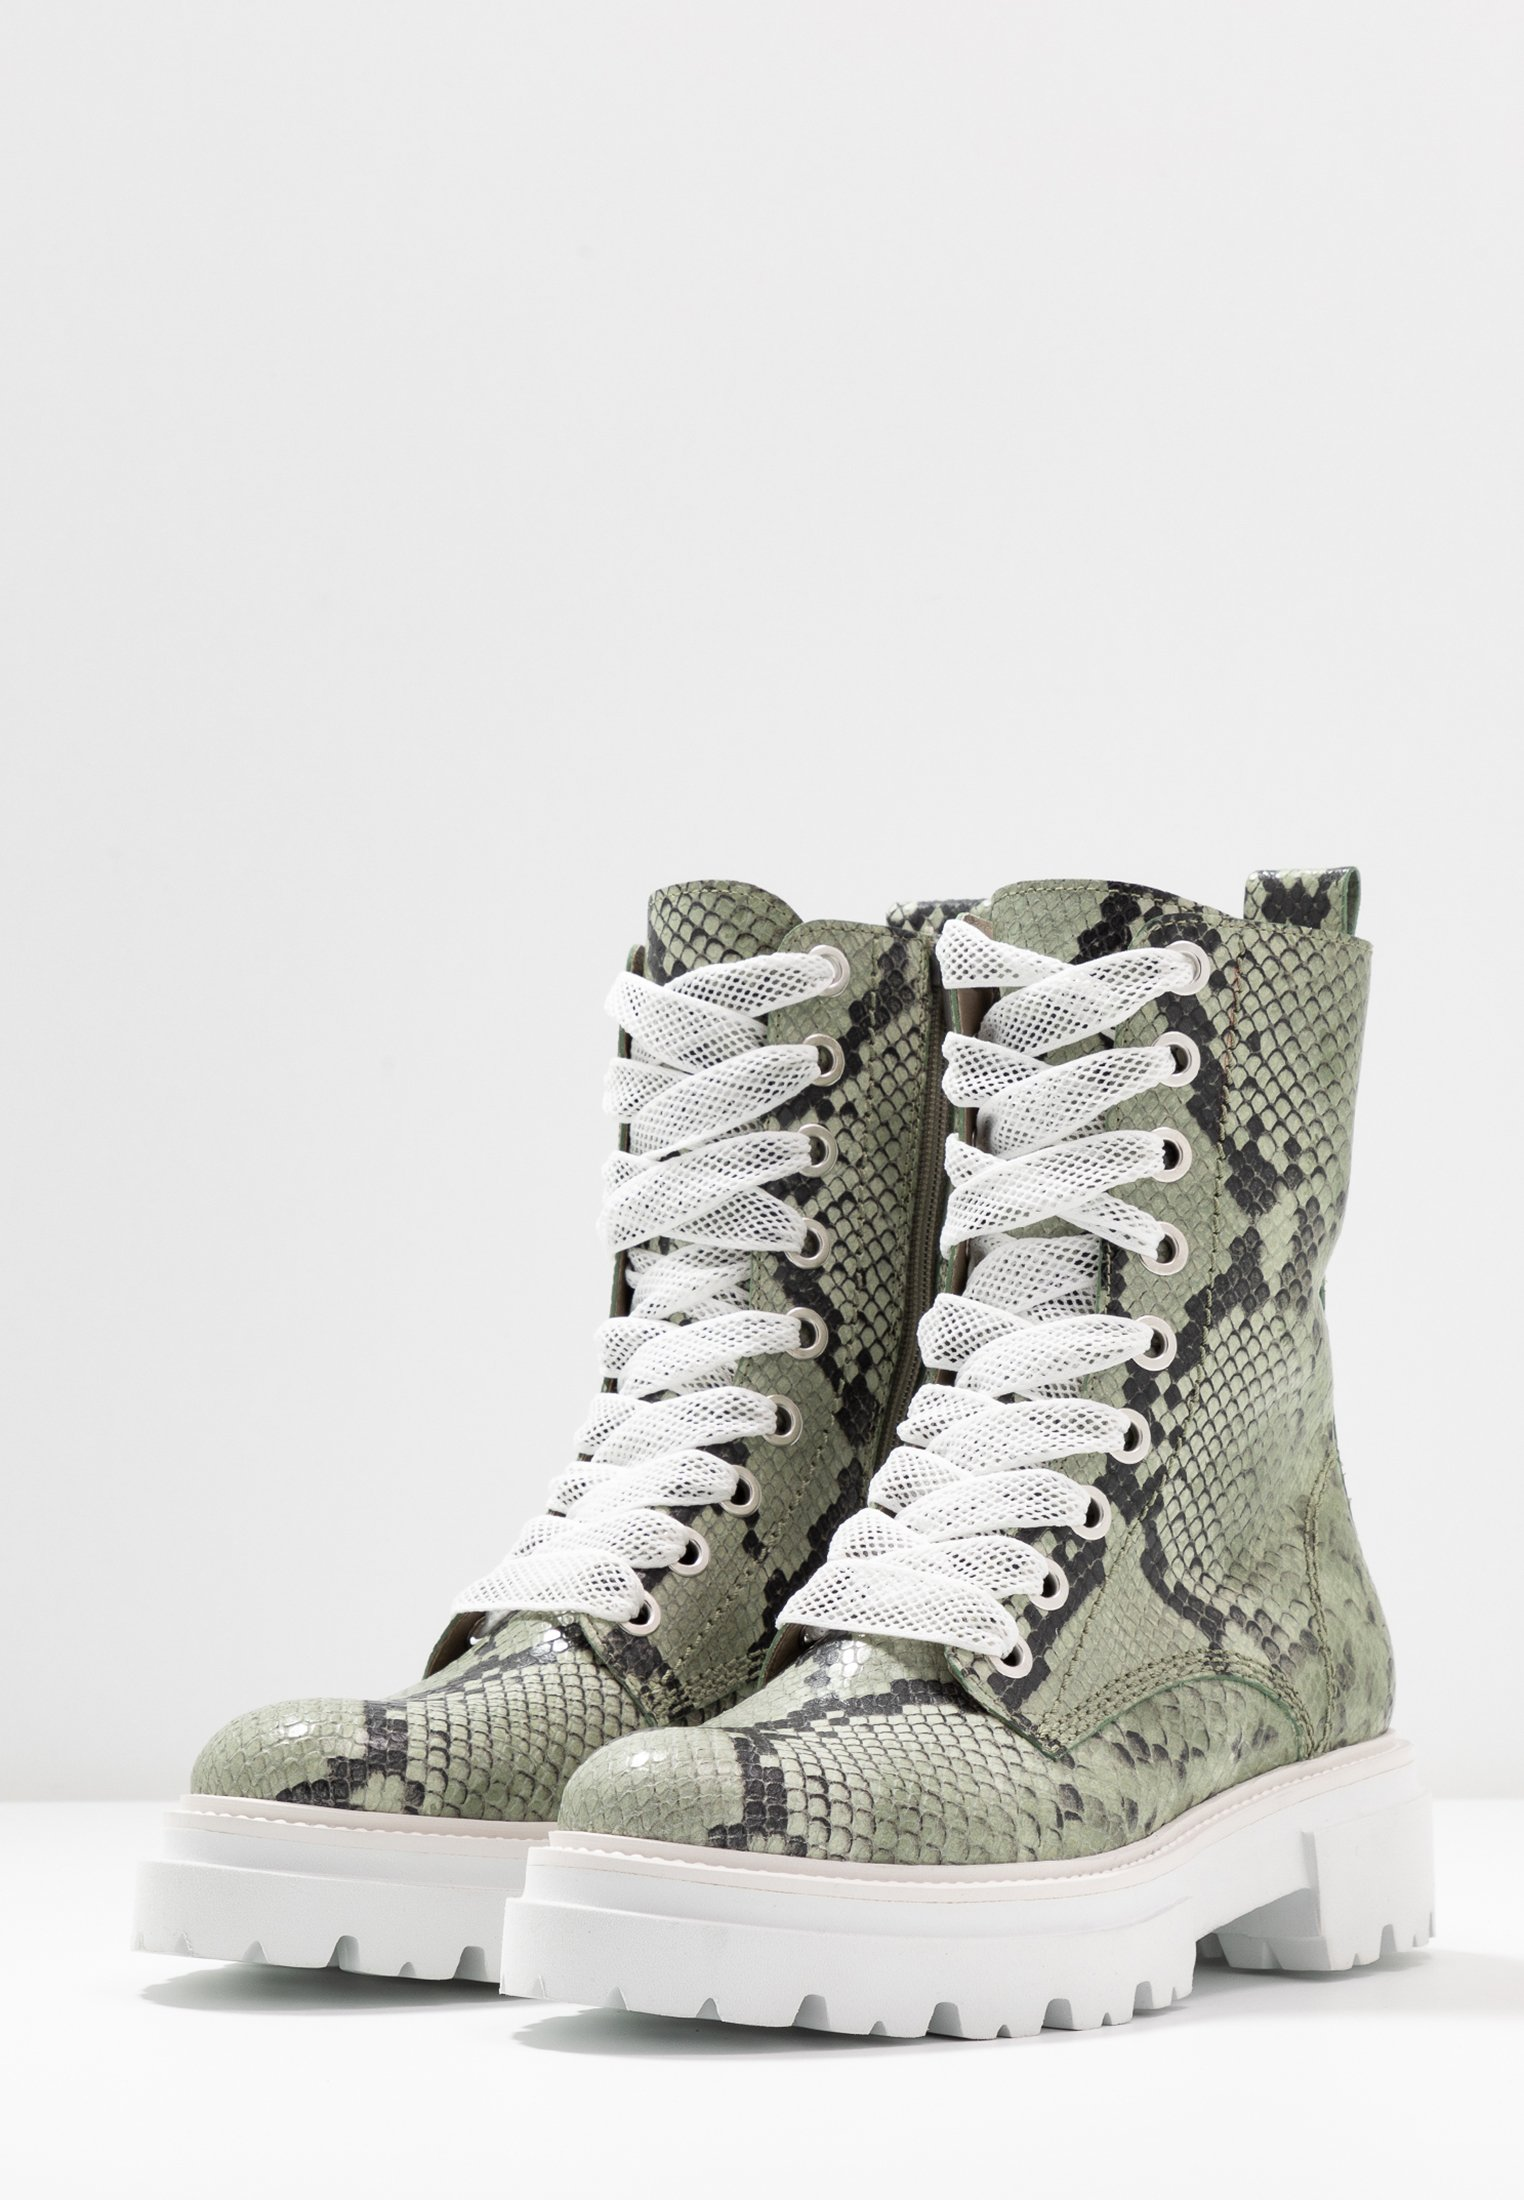 2013 Cheapest Kennel + Schmenger BOBBY - Platform ankle boots - shilf/weiß | women's shoes 2020 JGfMD